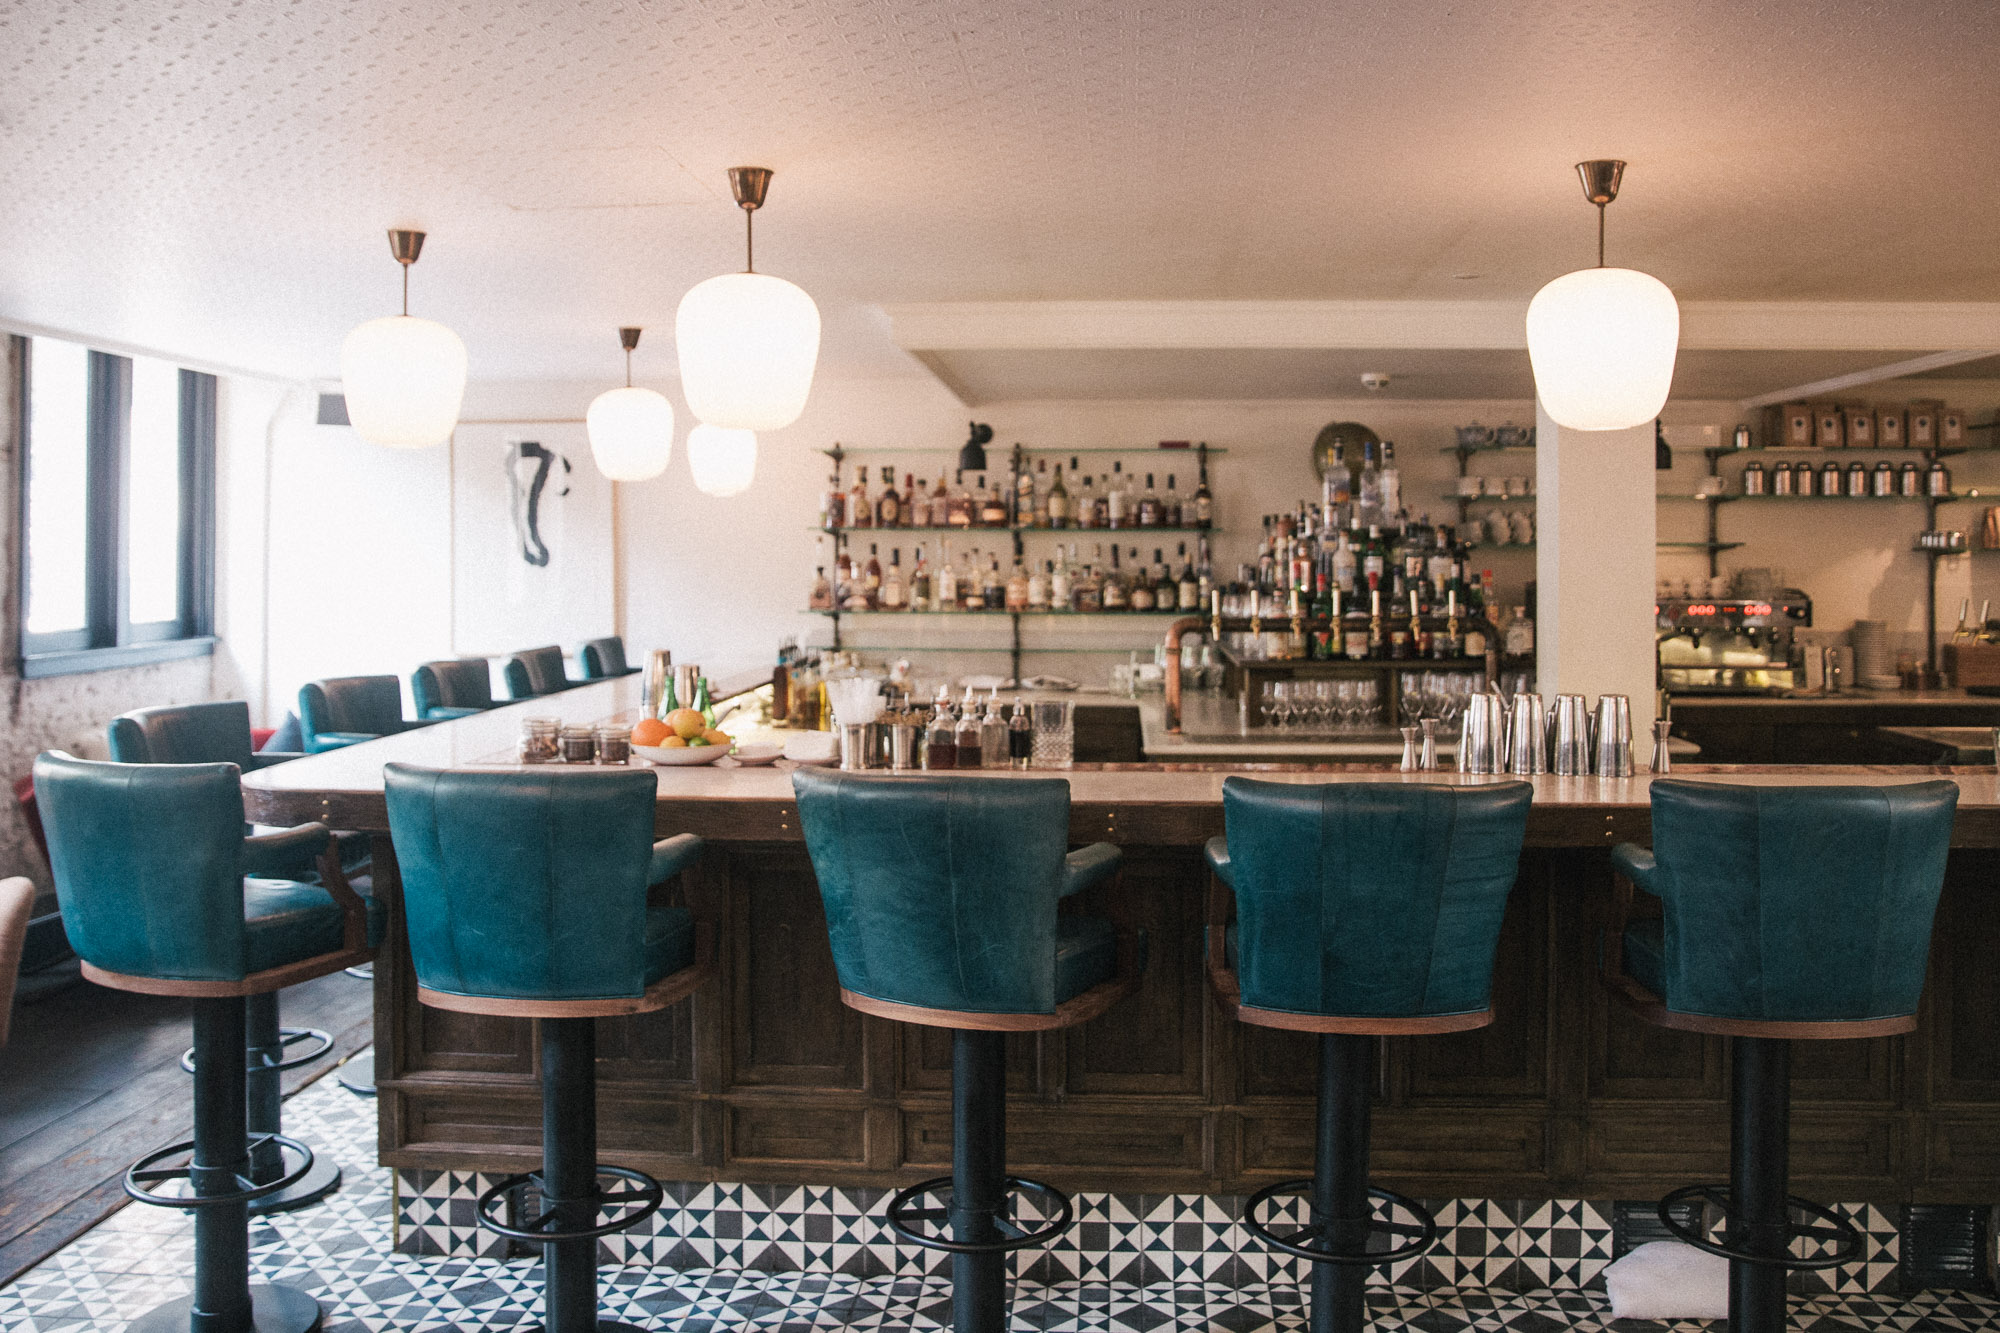 Bar at the hoxton hotel in Amsterdam's trendy 9 streets district, The Netherlands